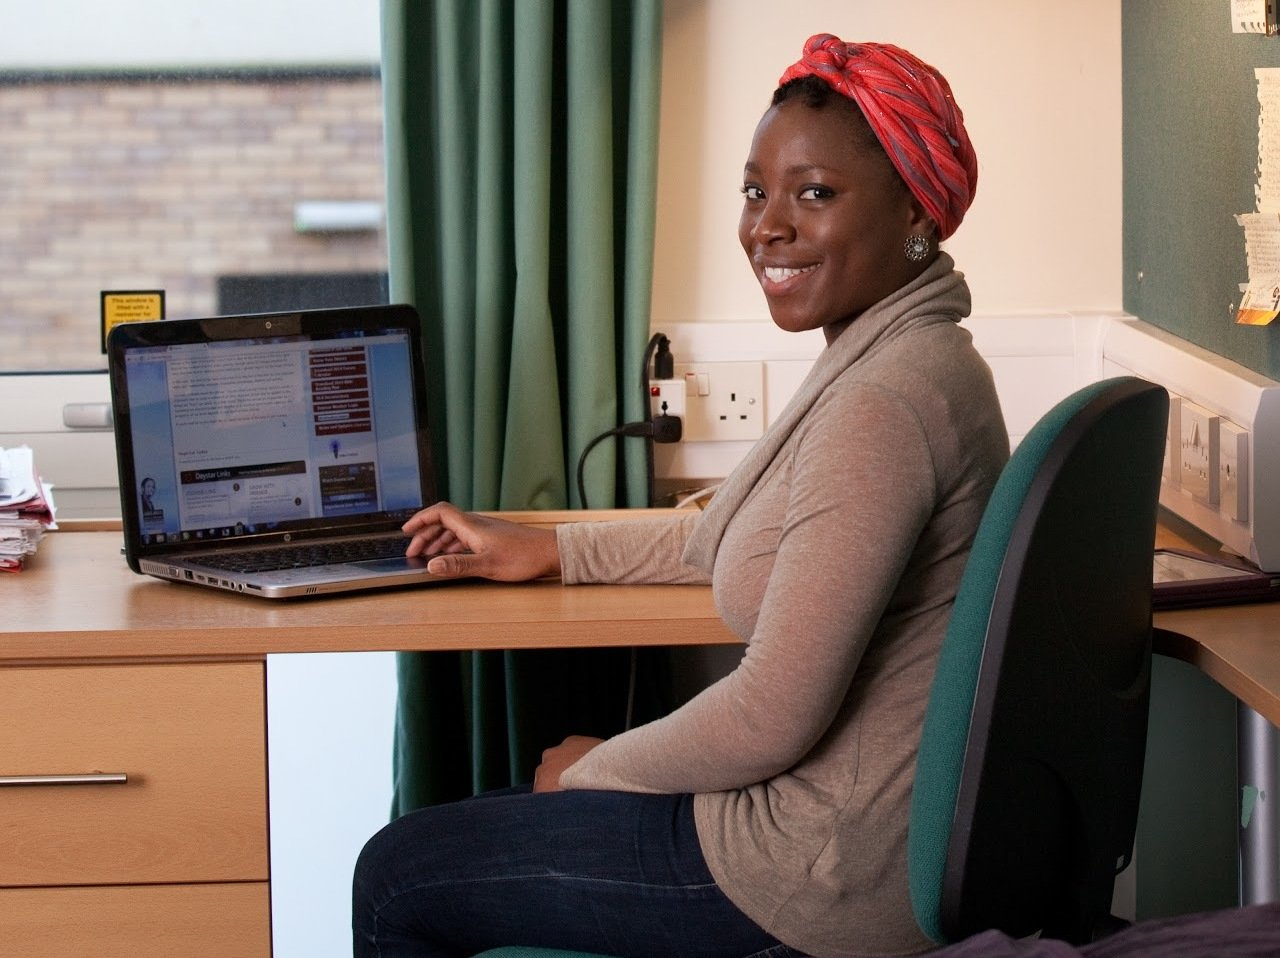 Online Learning in student accommodation